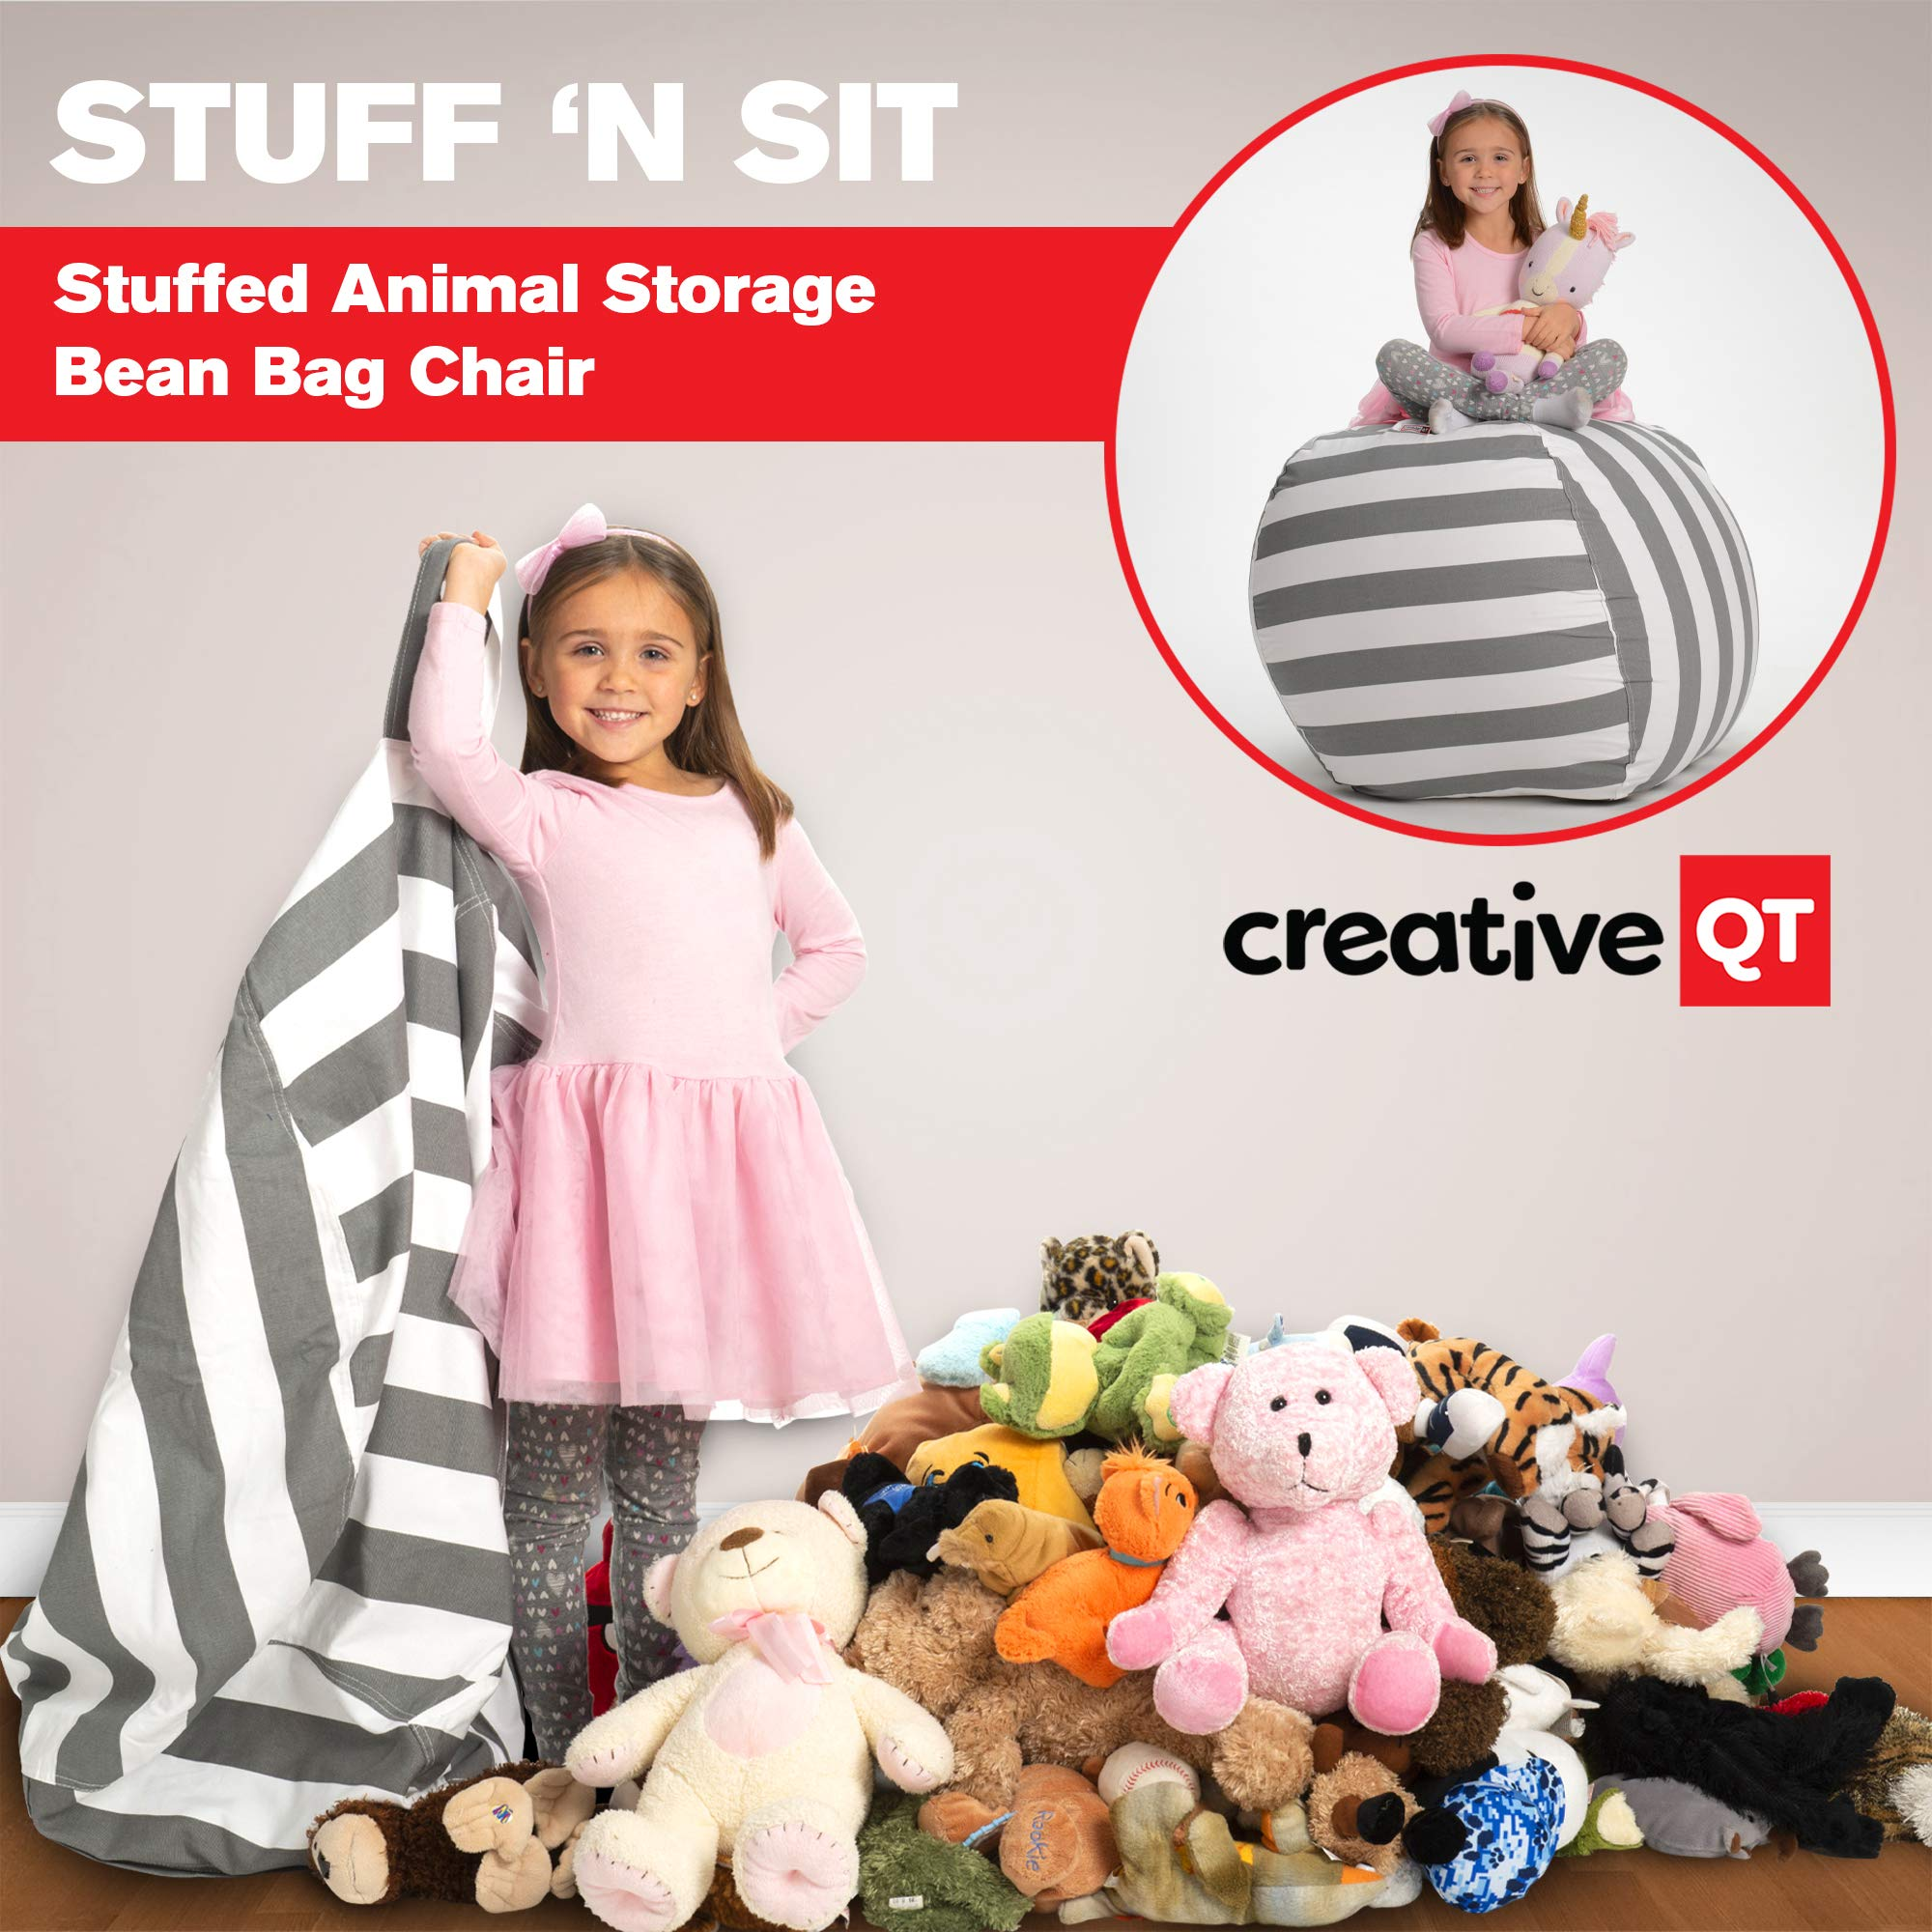 Creative QT Stuffed Animal Storage Bean Bag Chair - Extra Large Stuff 'n Sit Organization for Kids Toy Storage - Available in a Variety of Sizes and Colors (38'', Grey/White Striped) by Creative QT